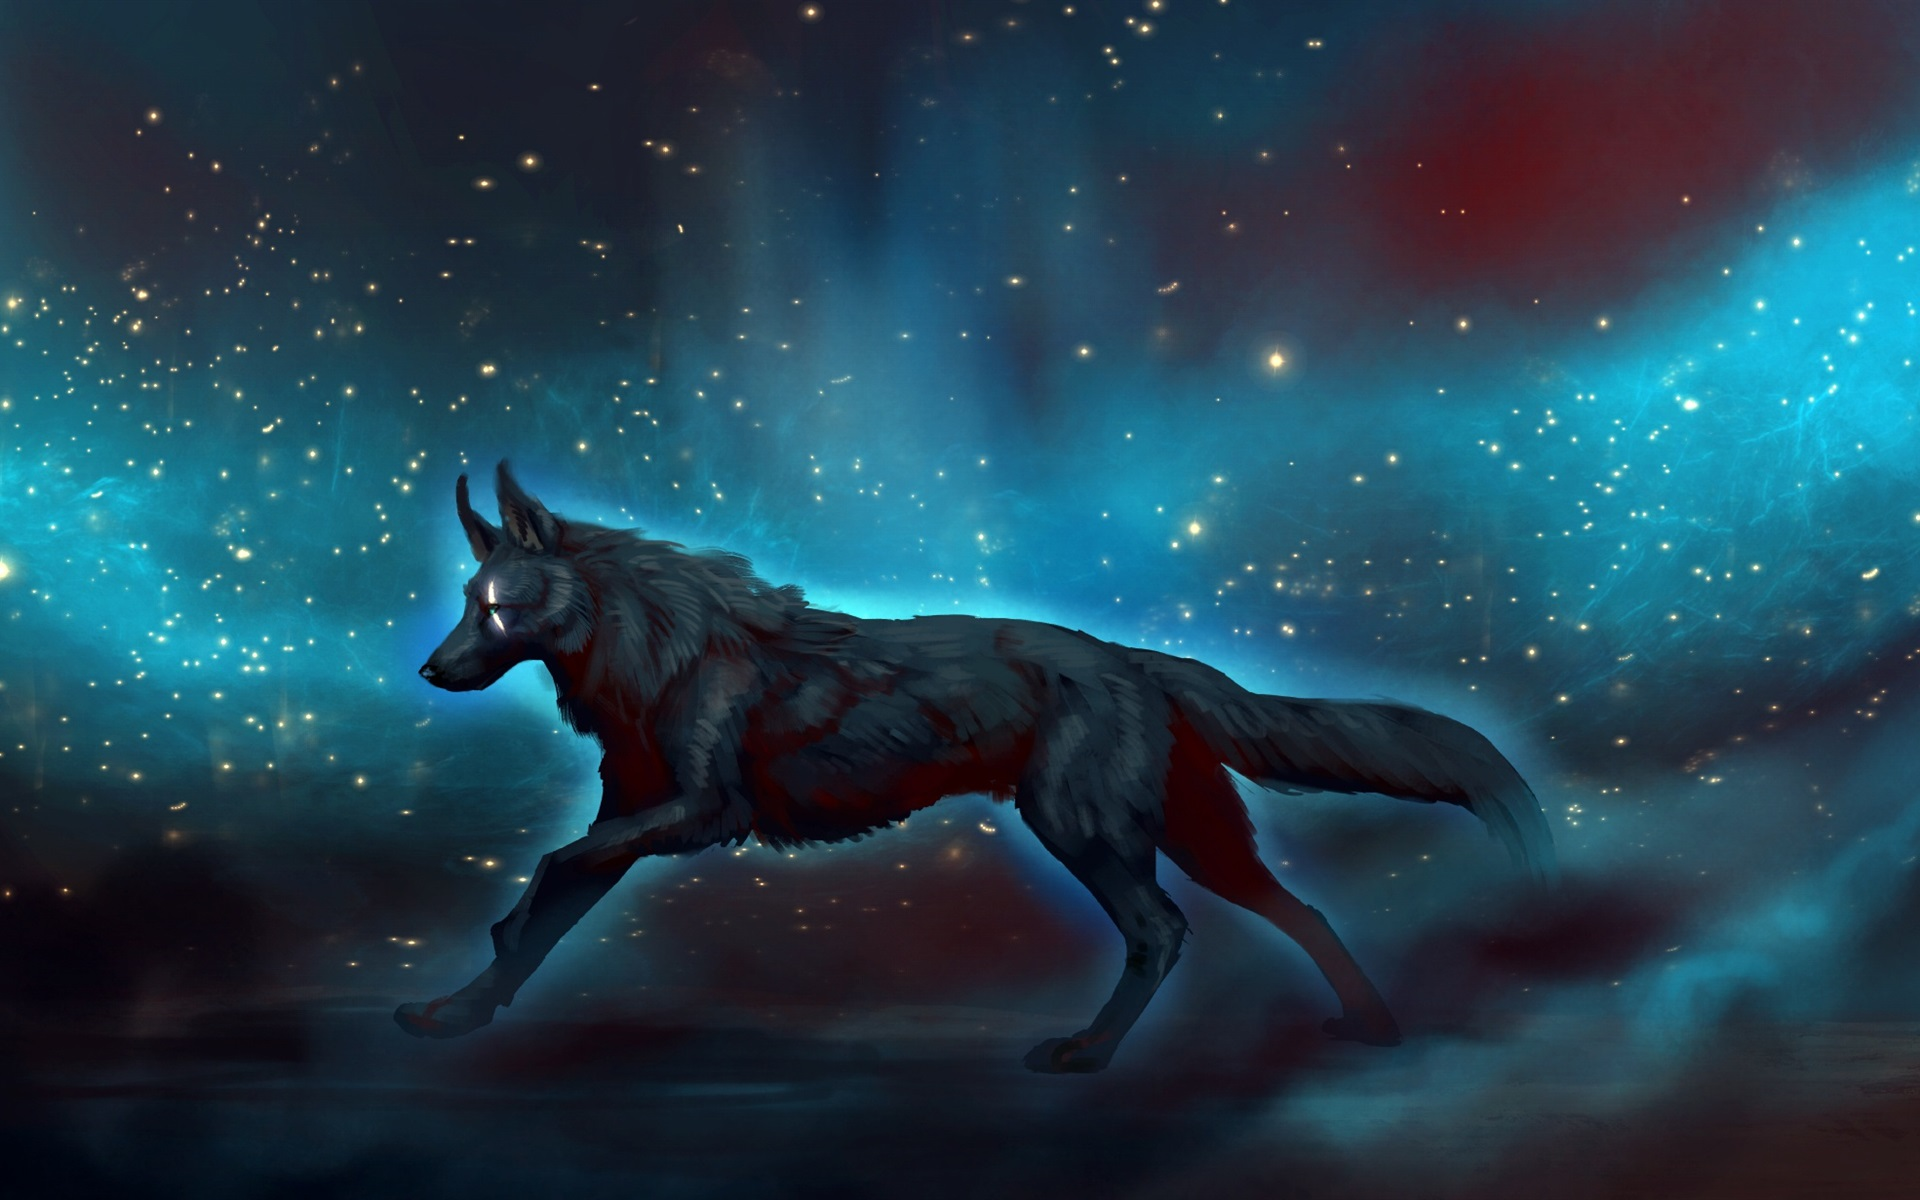 Wallpaper Black Wolf Walk At Night Starry Art Picture 1920x1200